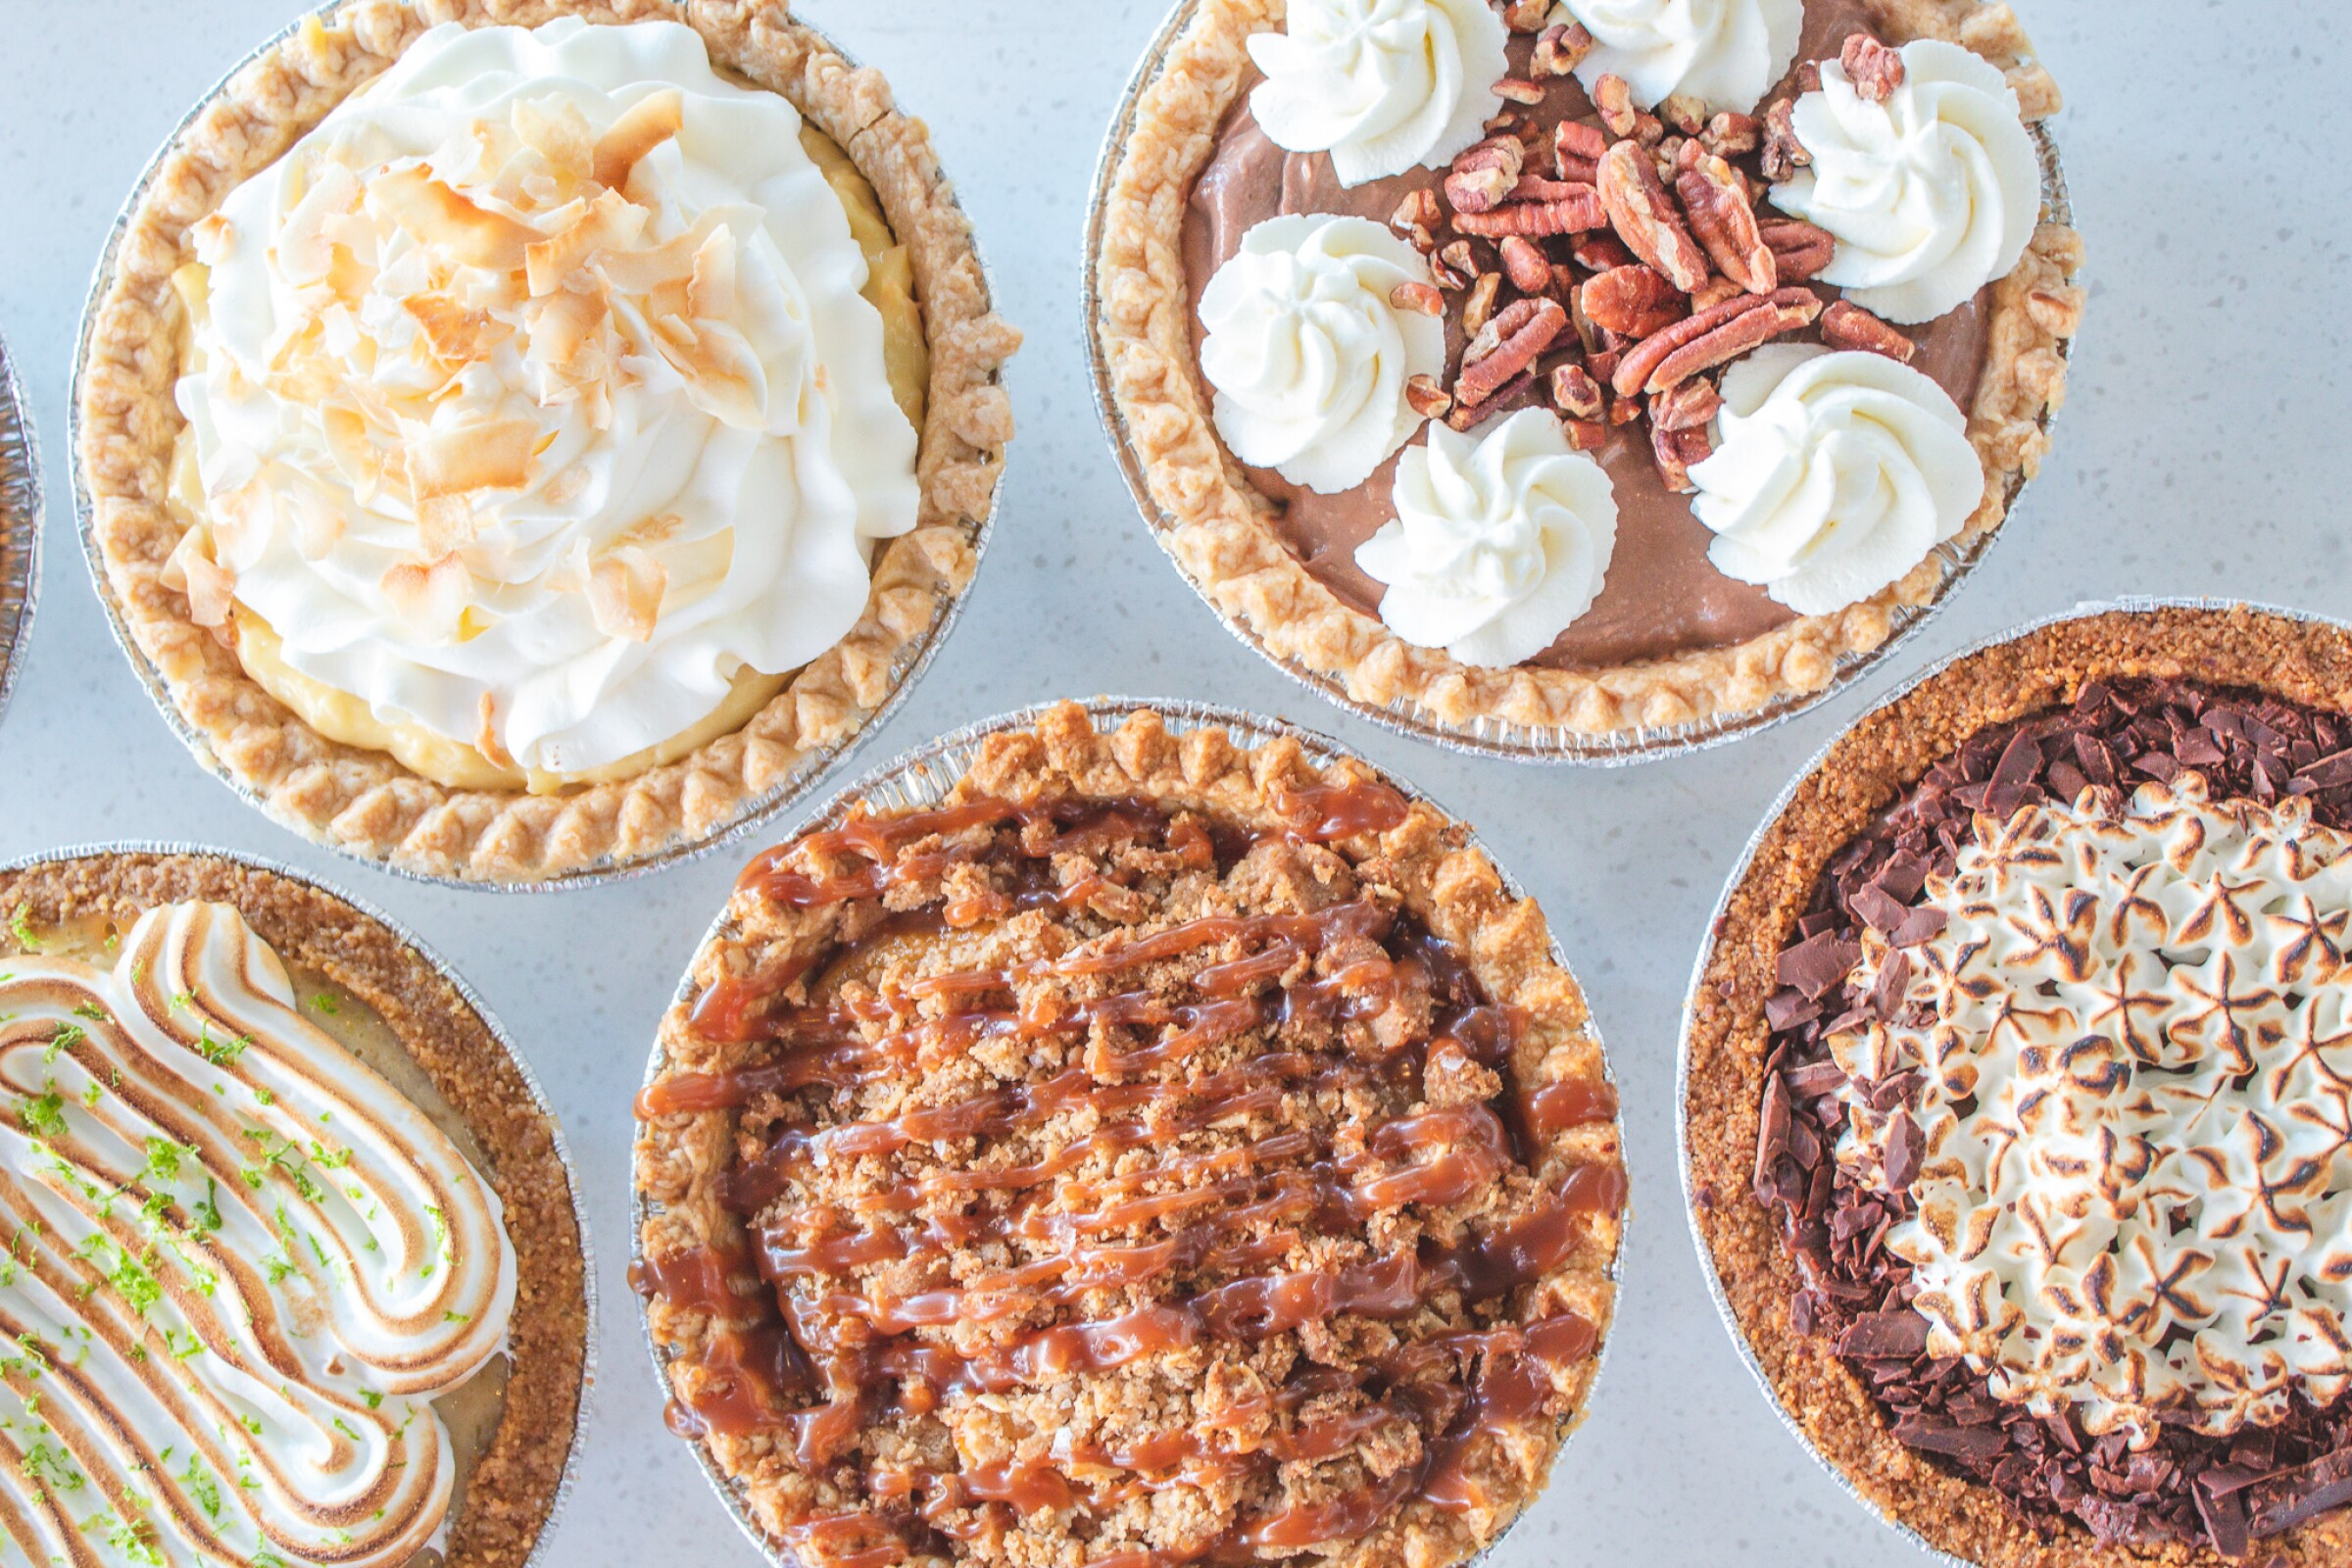 Pacific Social will offer a selection of pie flavors on Pi Day.